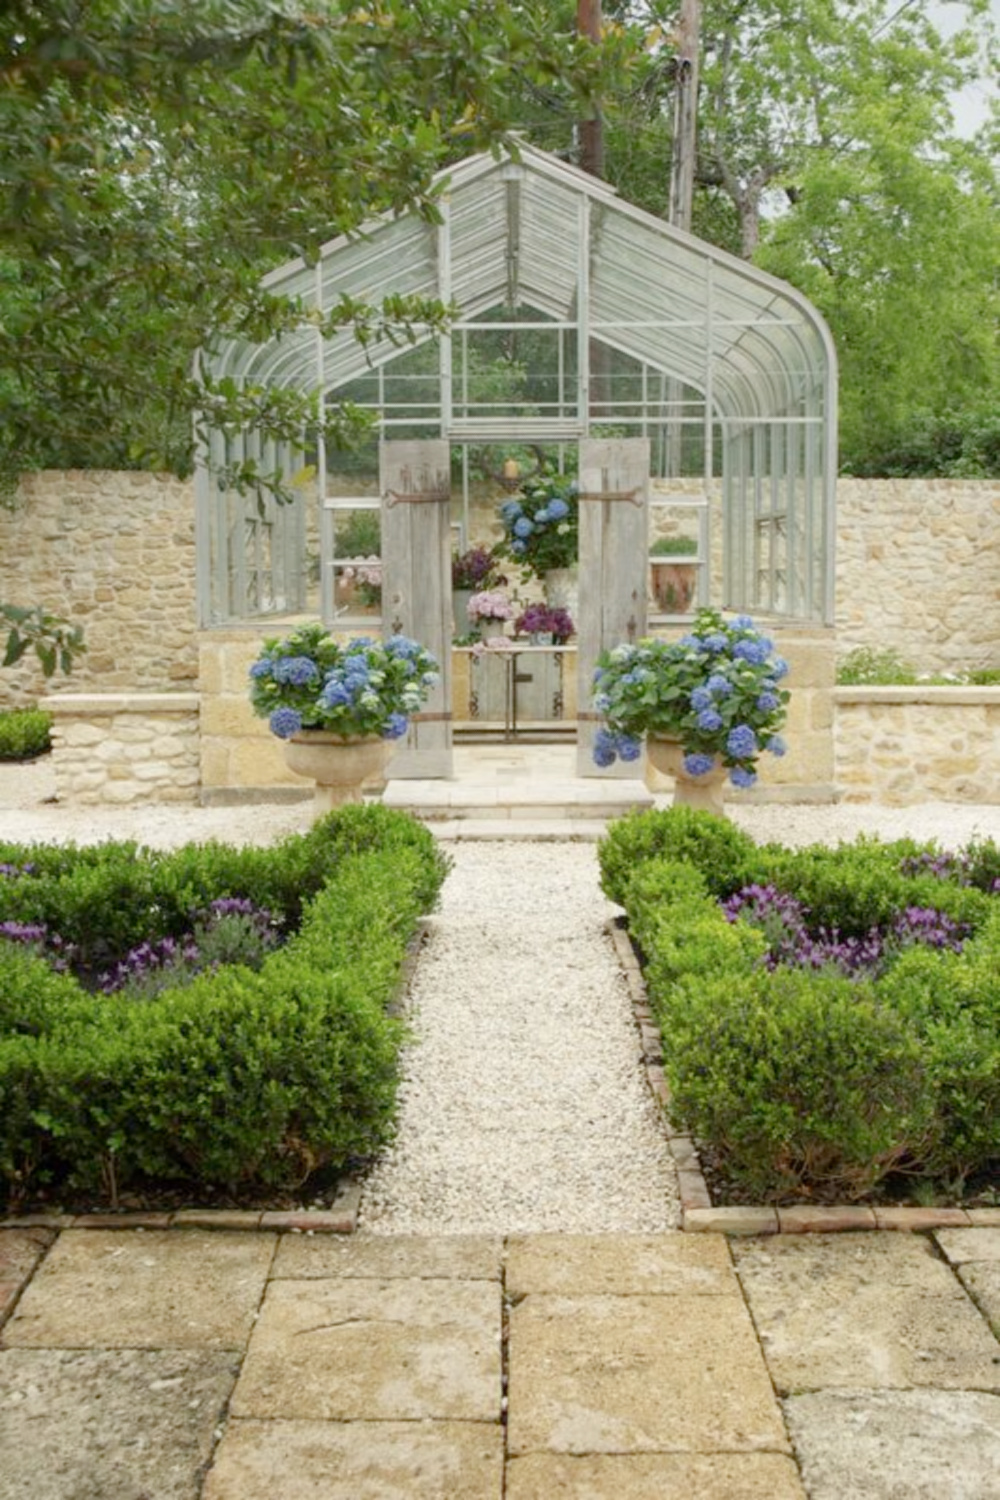 Exquisite French garden with conservatory and reclaimed stone from France - Chateau Domingue. #frenchgardens #conservatory